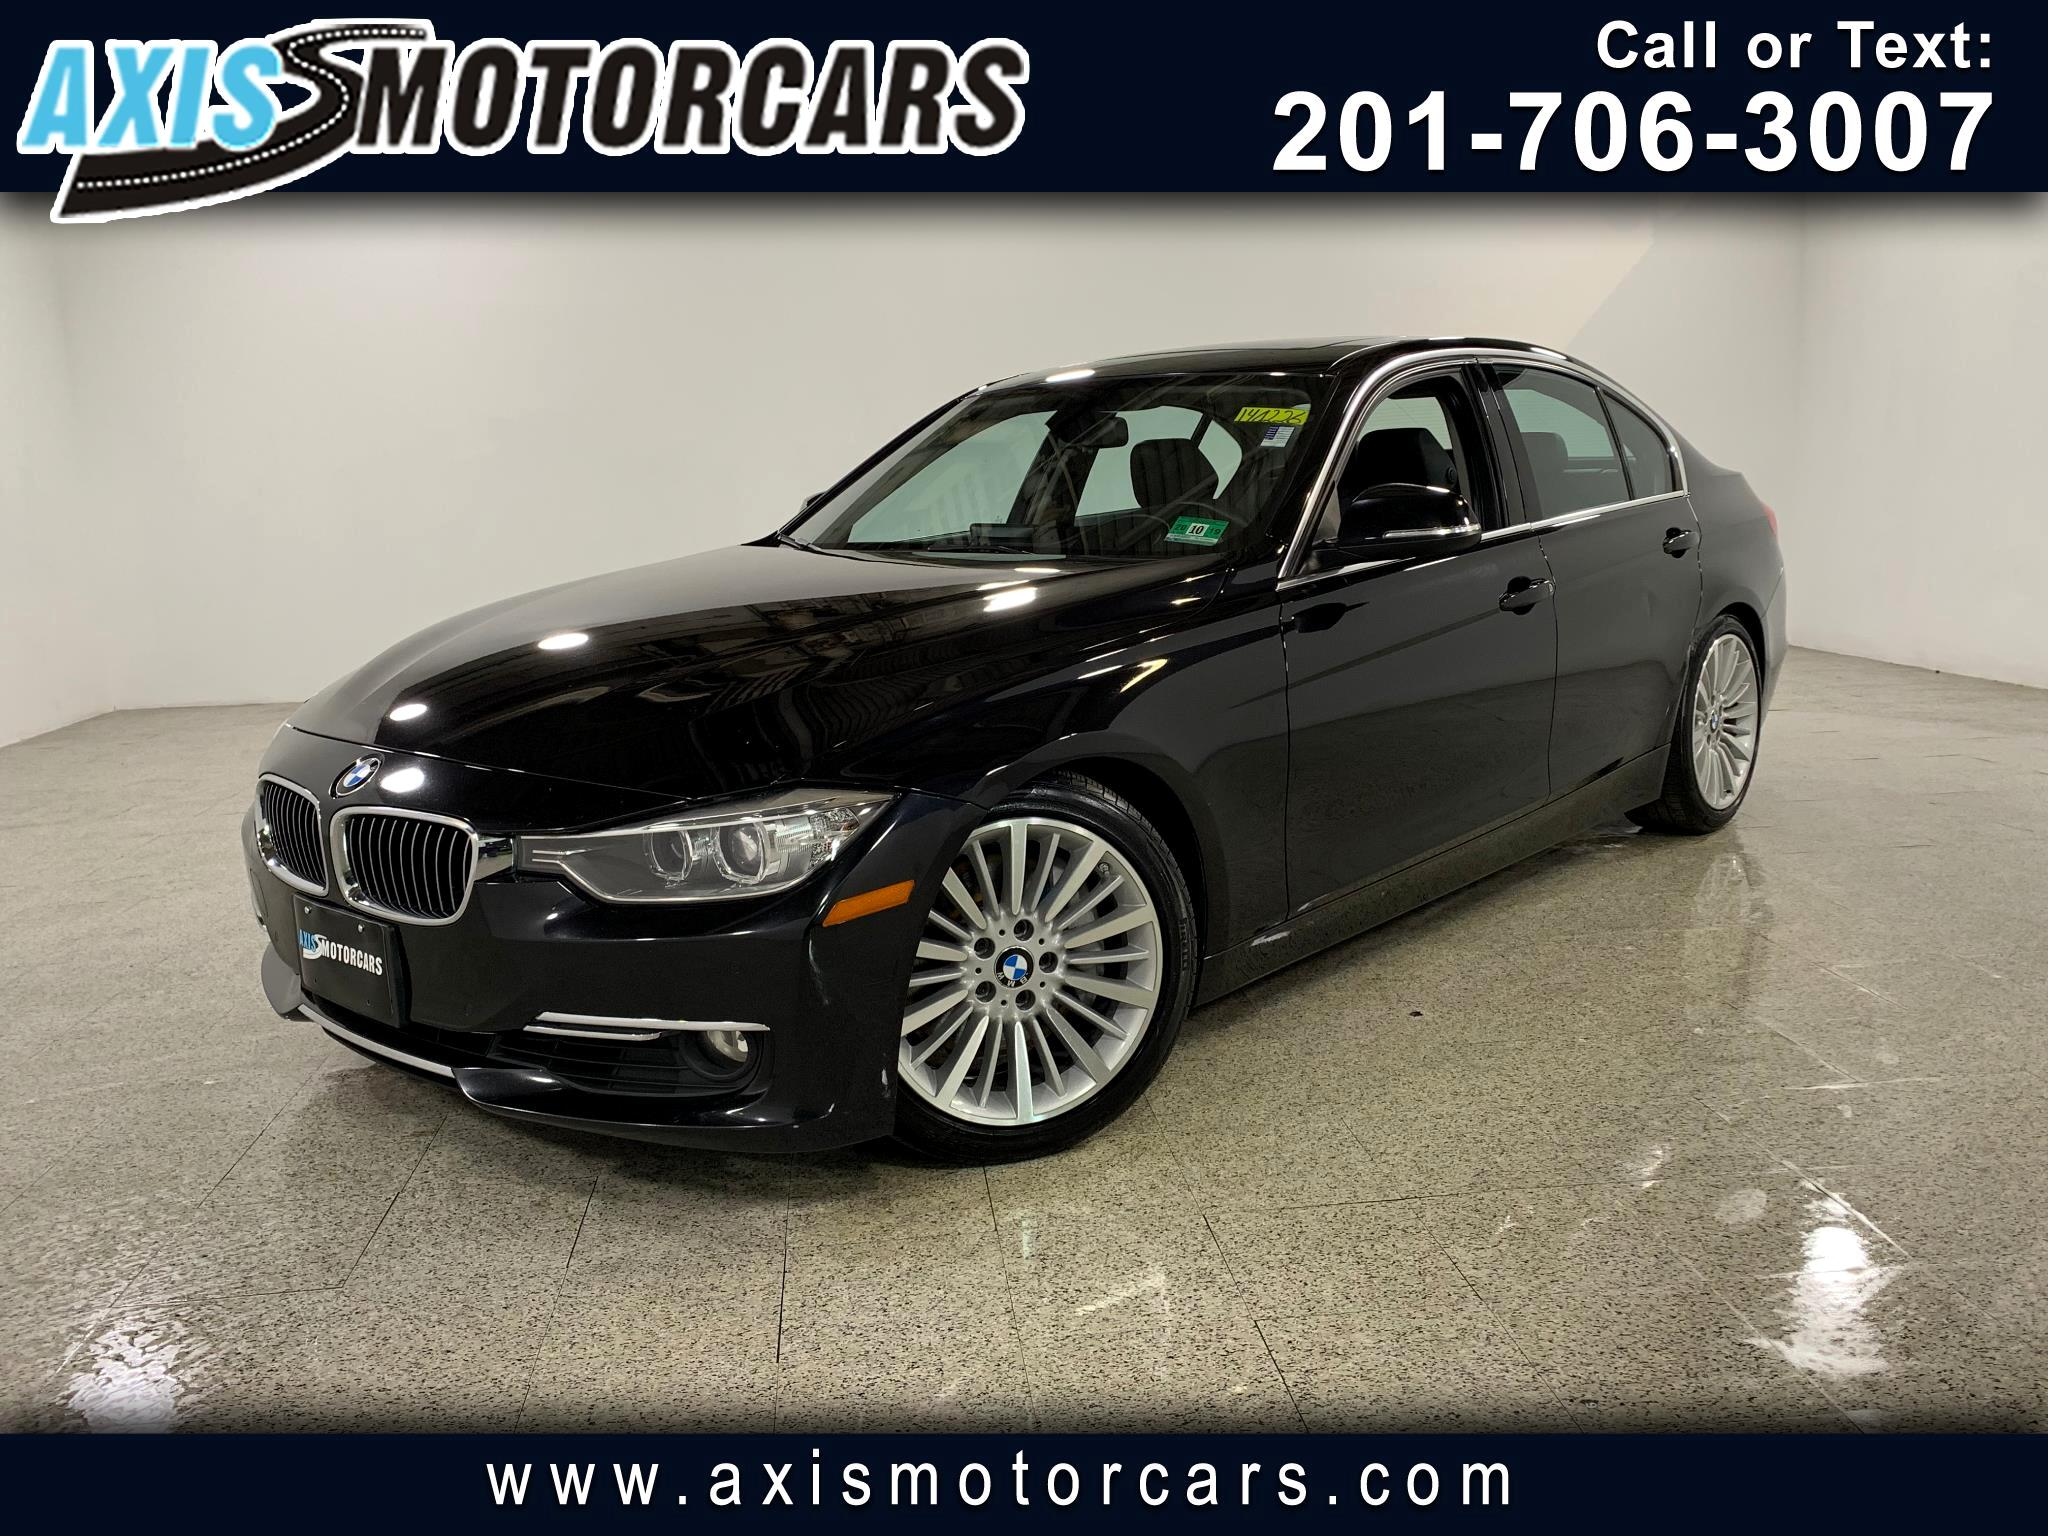 2013 BMW 335i w/Navigation Sunroof Leather